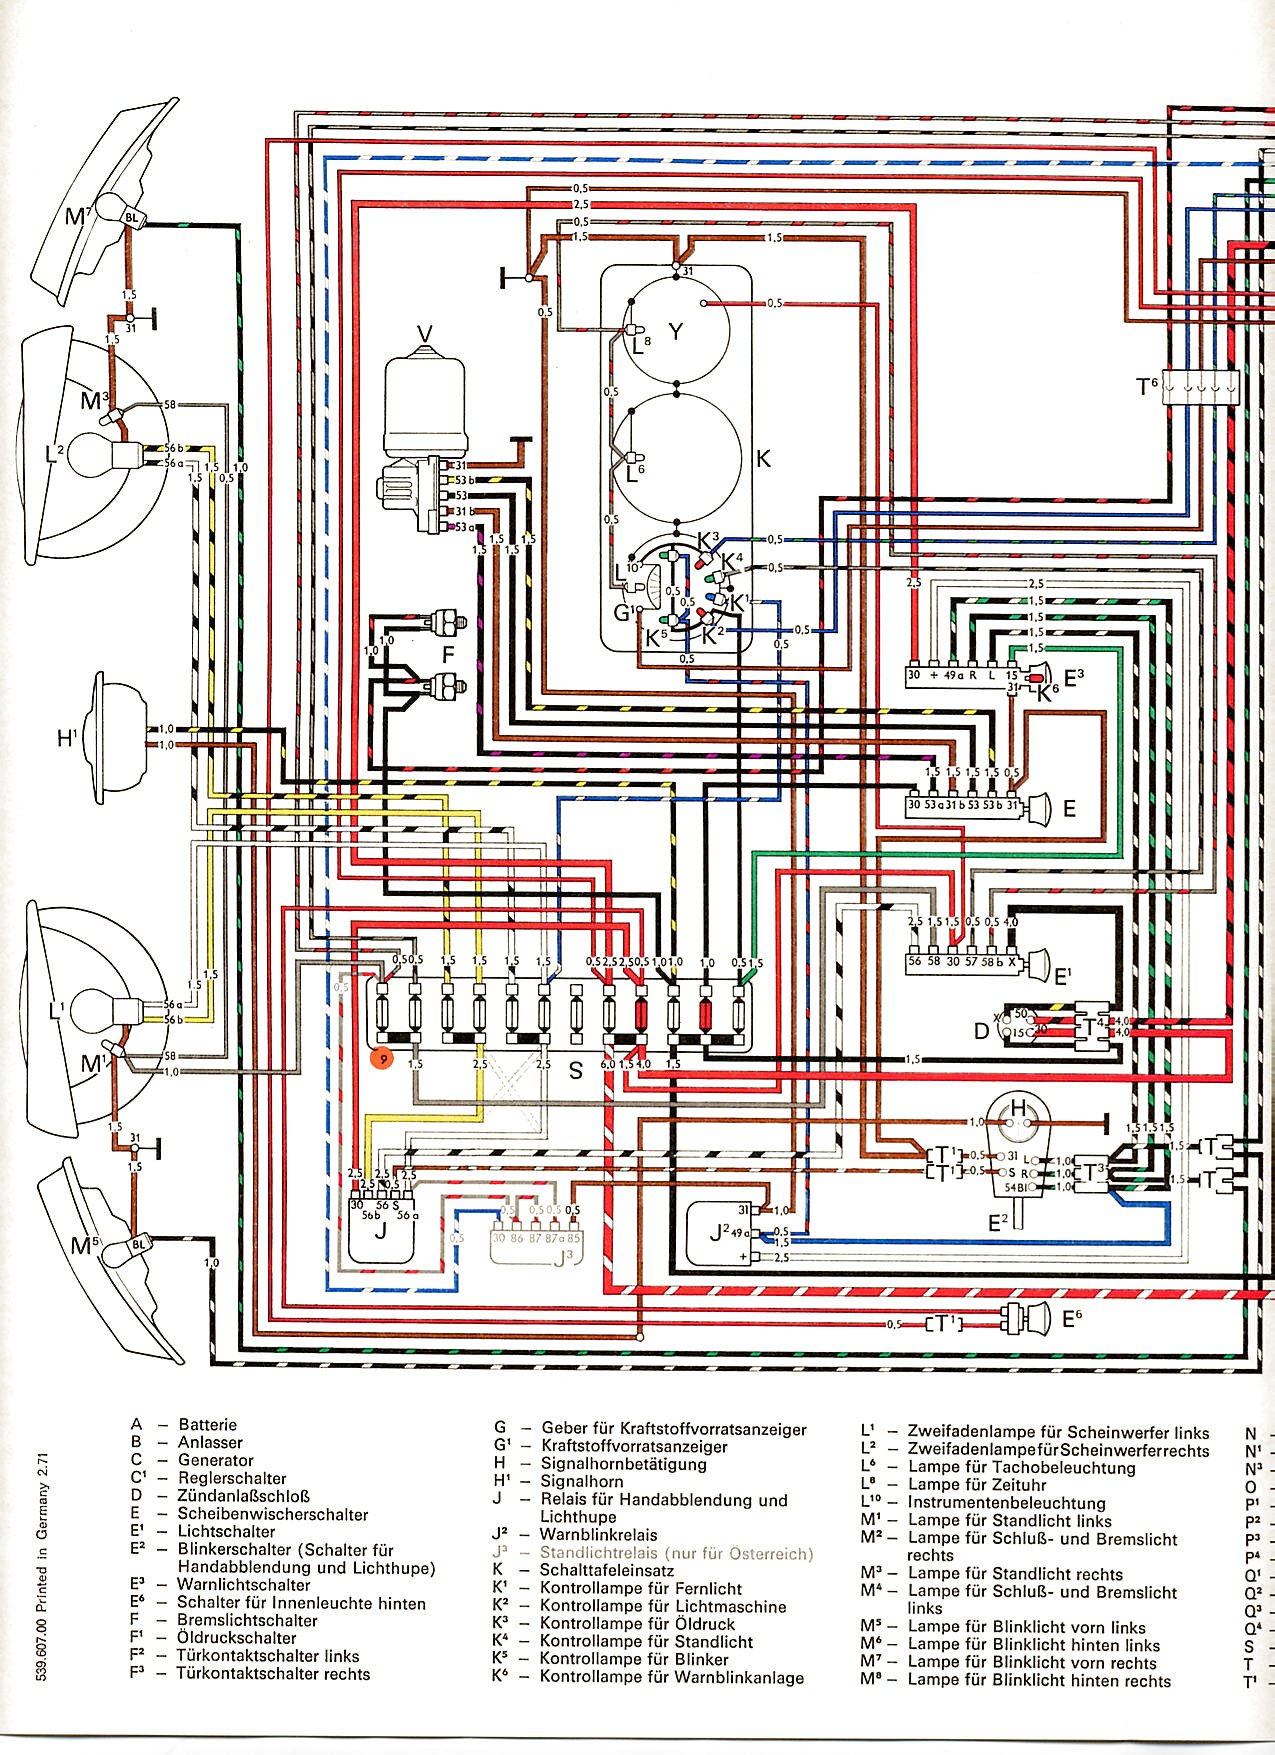 71 Super Beetle Wiring Diagram Free For You Bug Altinator With 1964 Vw Diagrams Scematic Rh 34 Jessicadonath De 1971